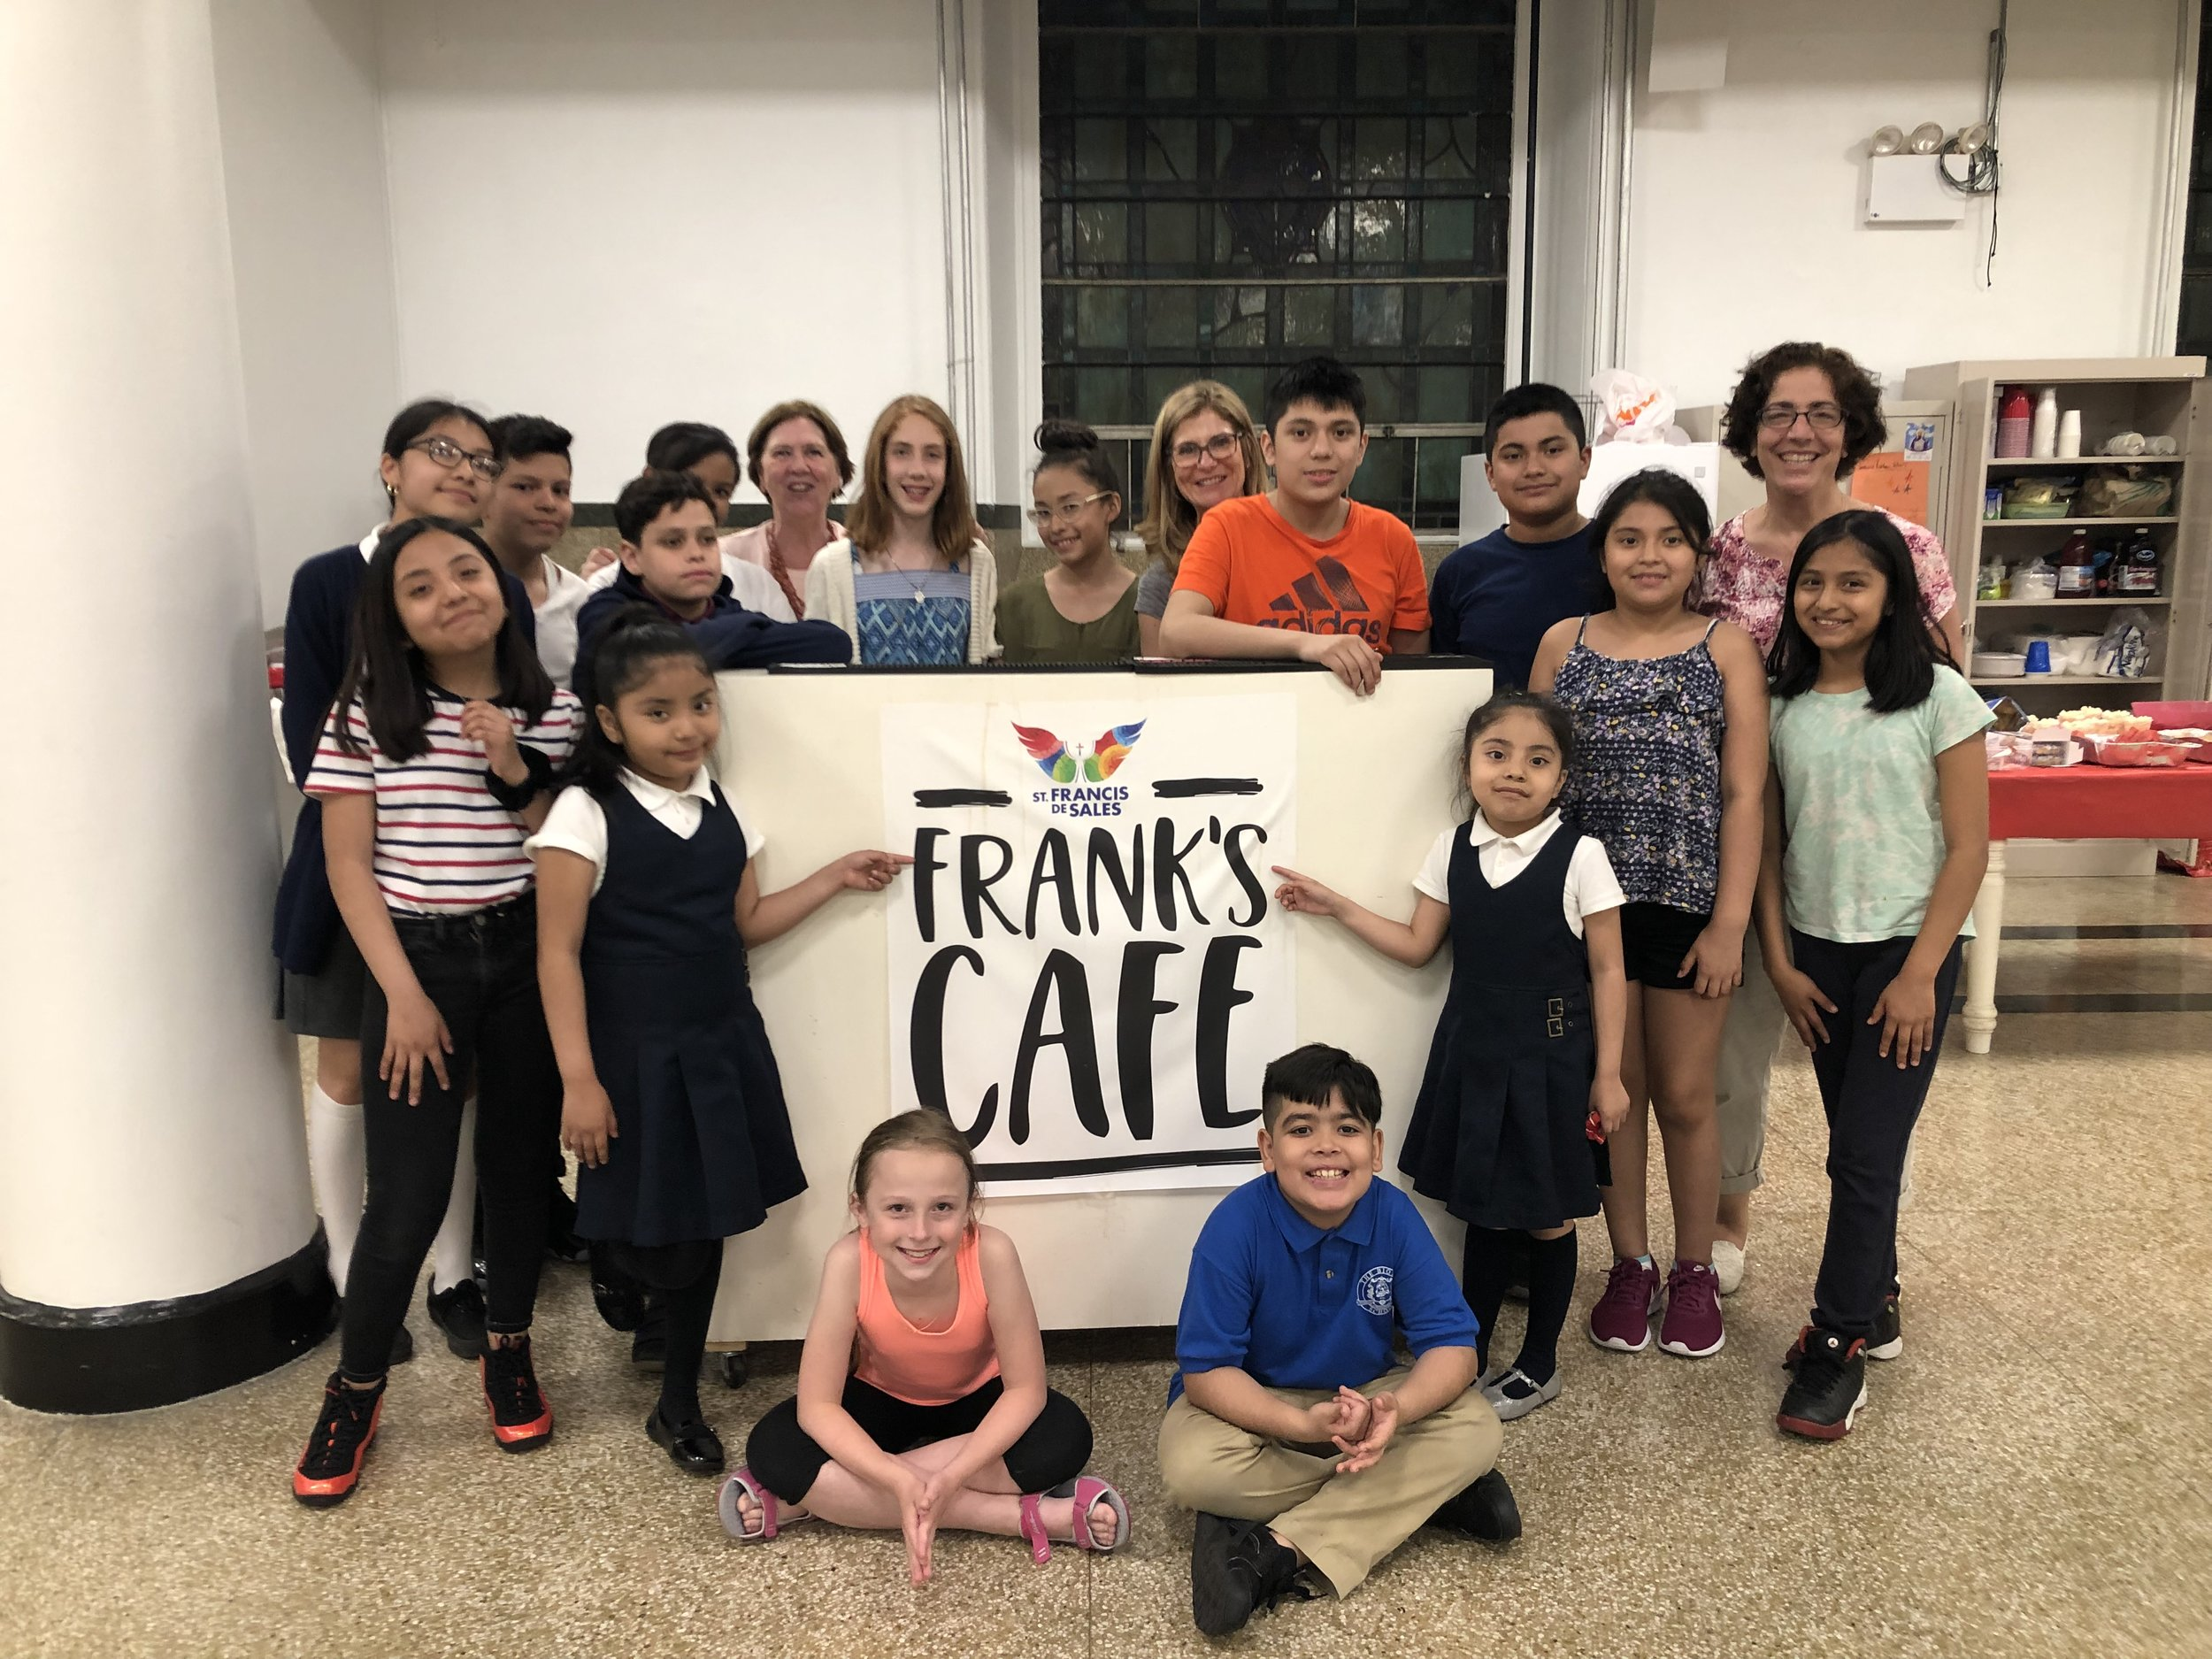 religious-education-2019-2020-st-francis-de-sales-catholic-church-new-york.JPG